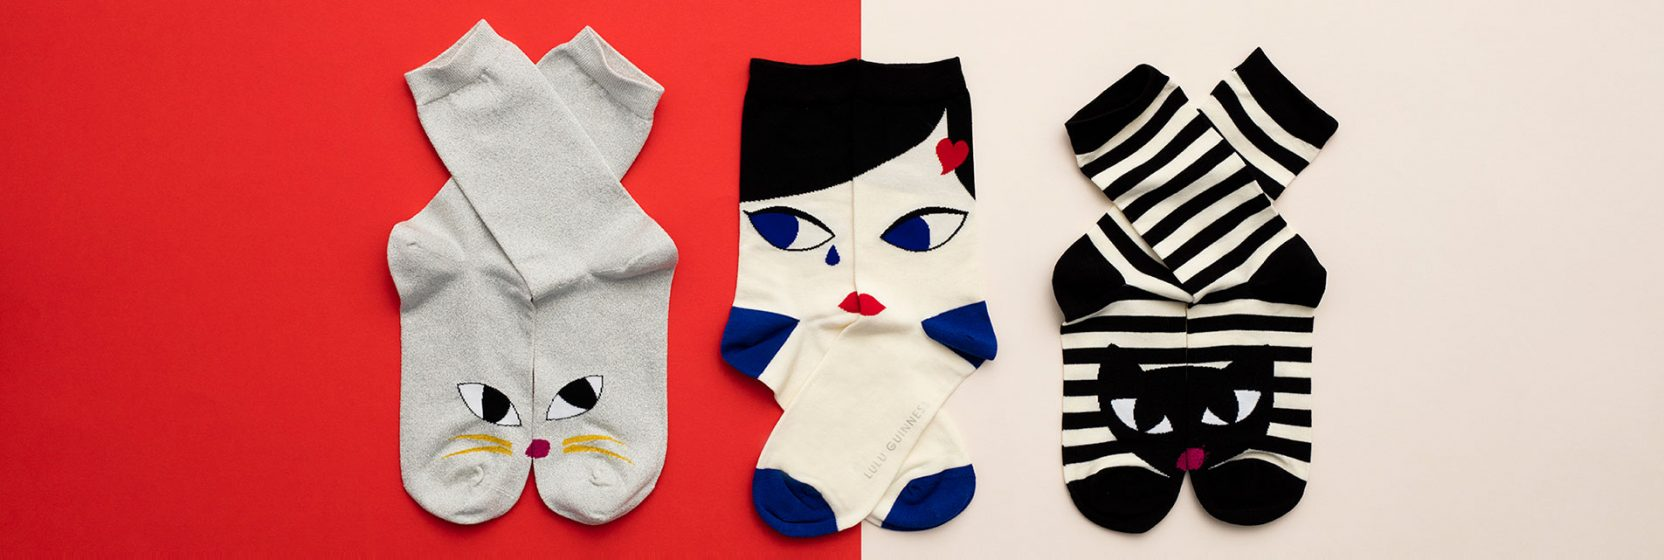 Lulu Guinness Ladies's Socks